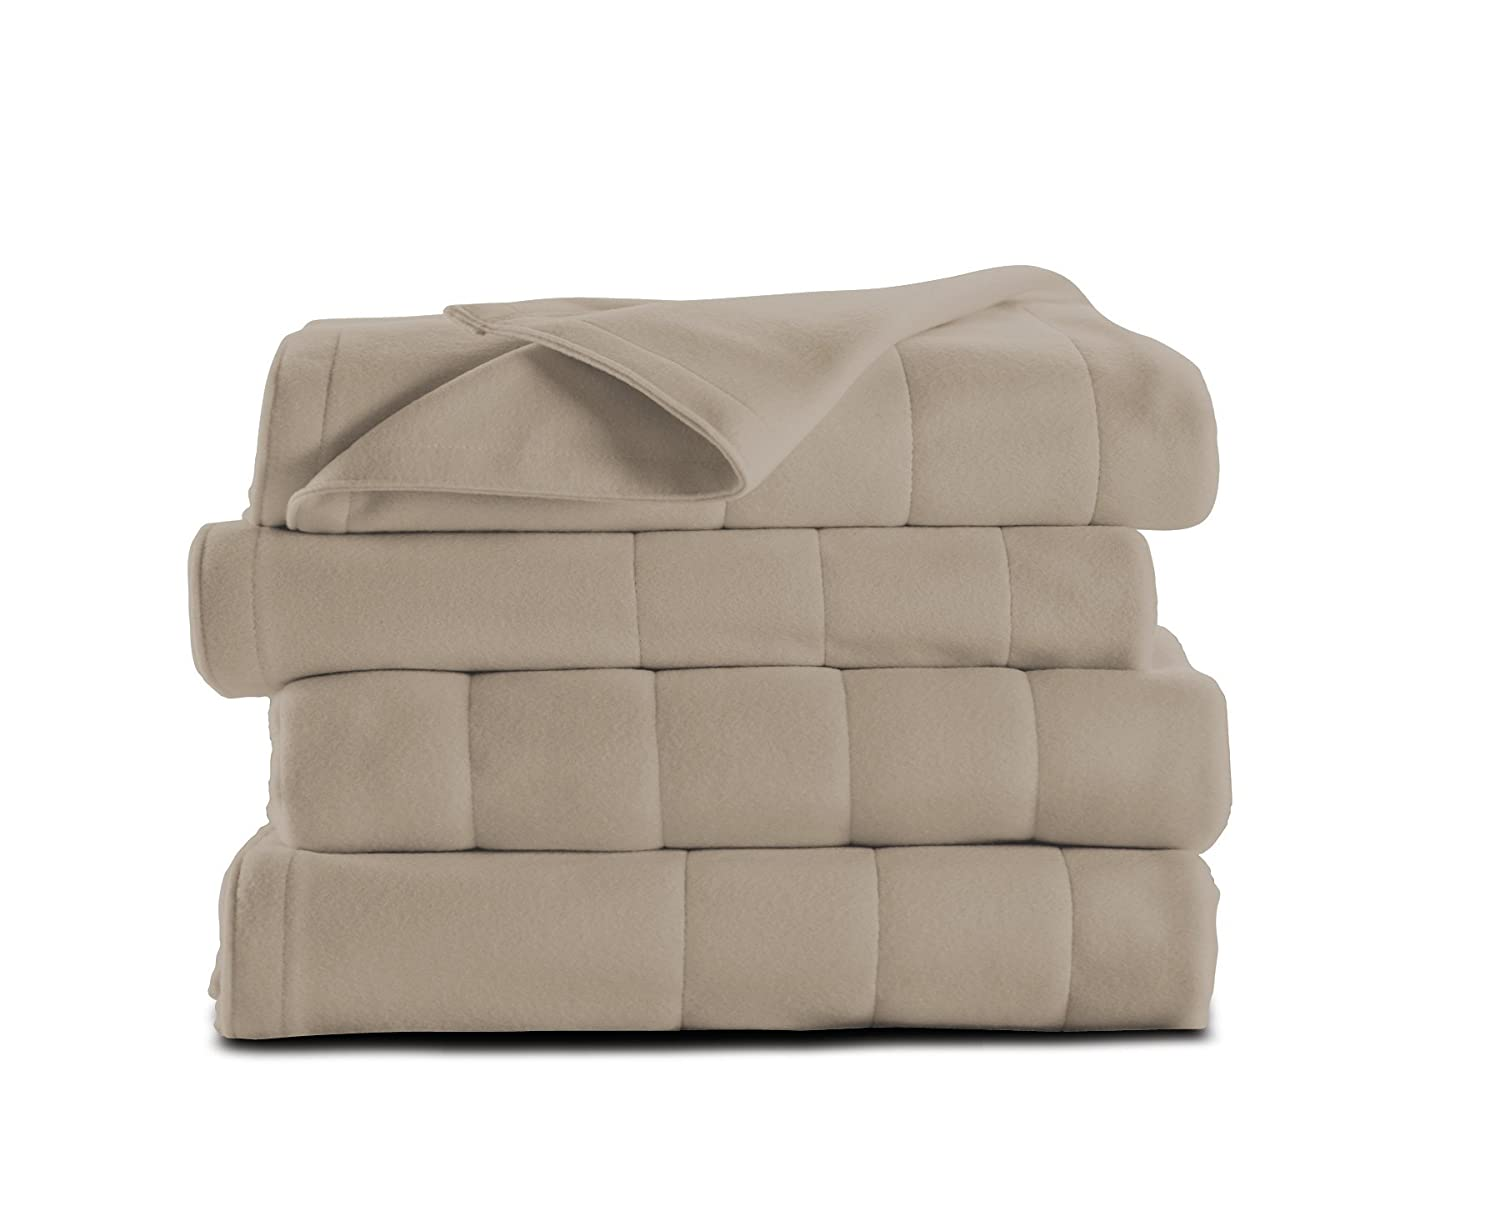 Sunbeam Microplush Heated Blanket Black Friday Deals